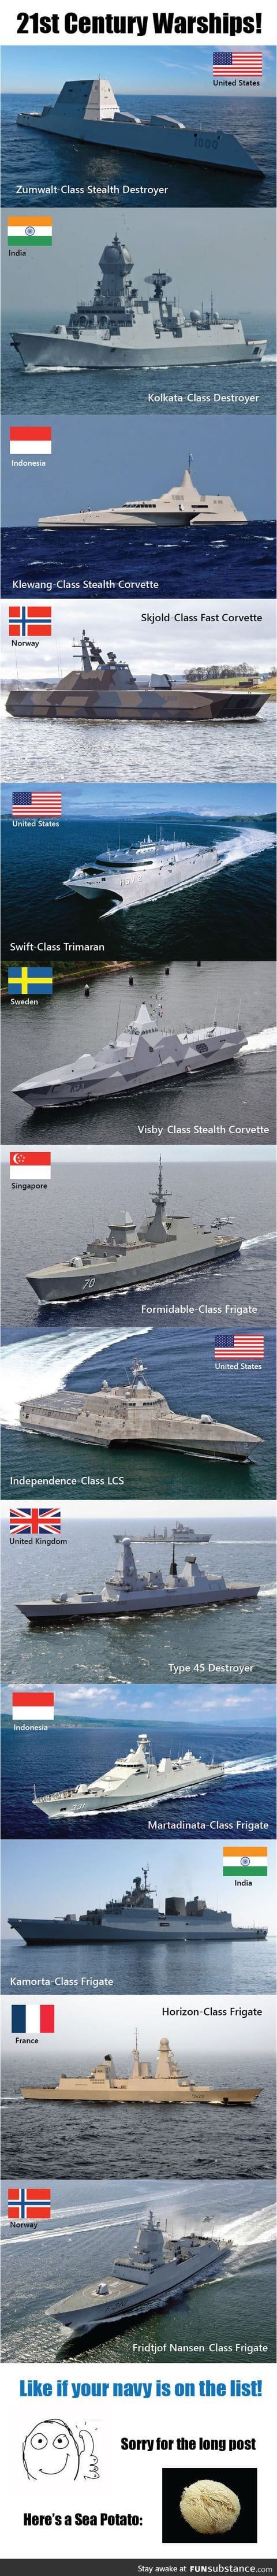 21st Century Warships from Around the Globe!